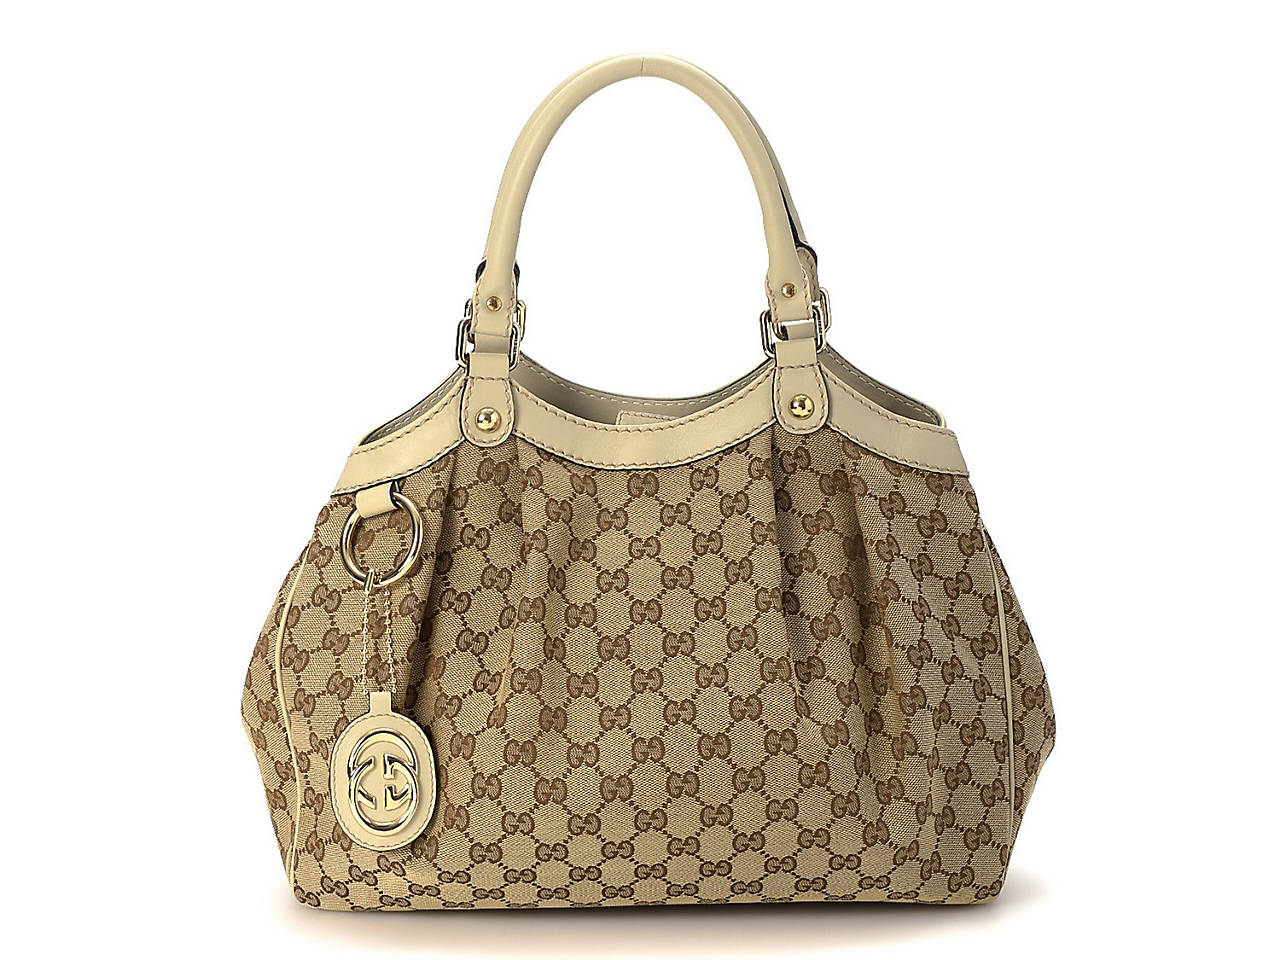 cba53b057f14 Gucci - Vintage Luxury GG Canvas Sukey Shoulder Bag Women's Handbags ...